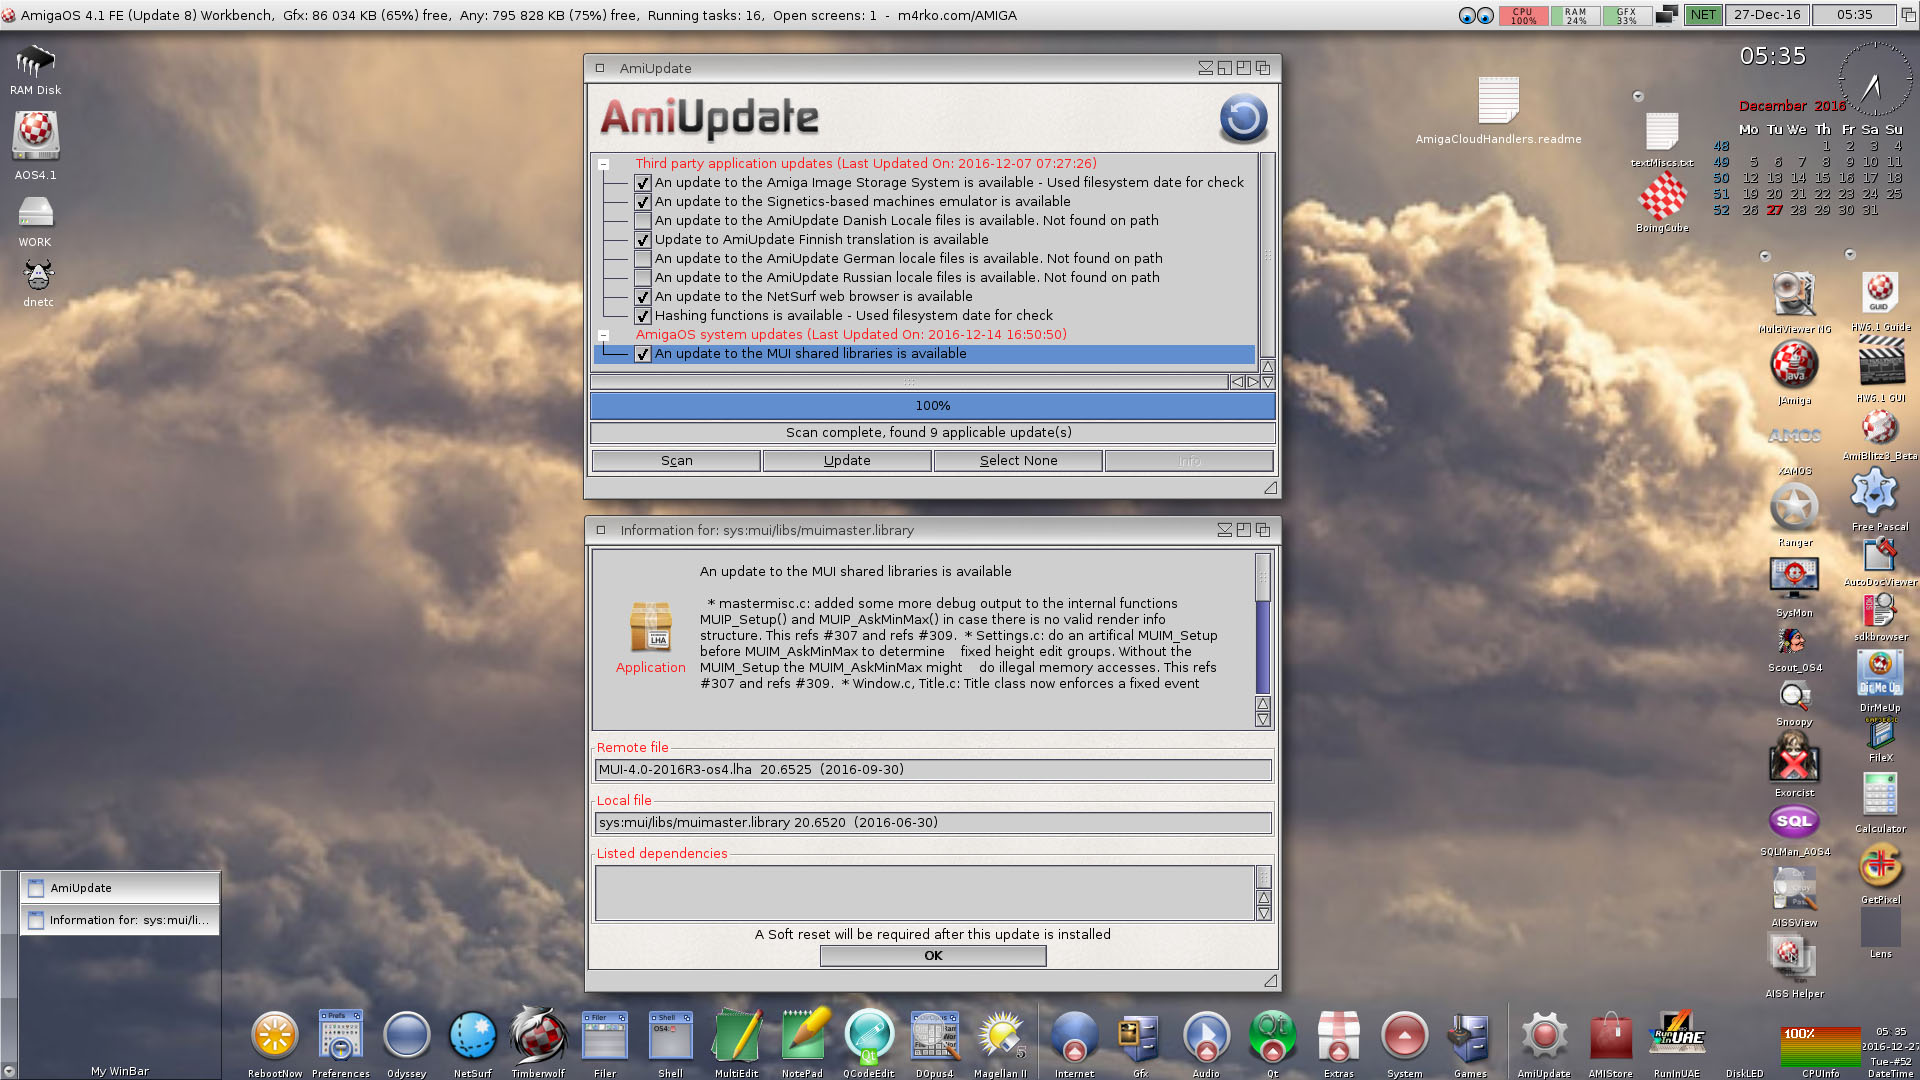 Software updates on AmiUpdate